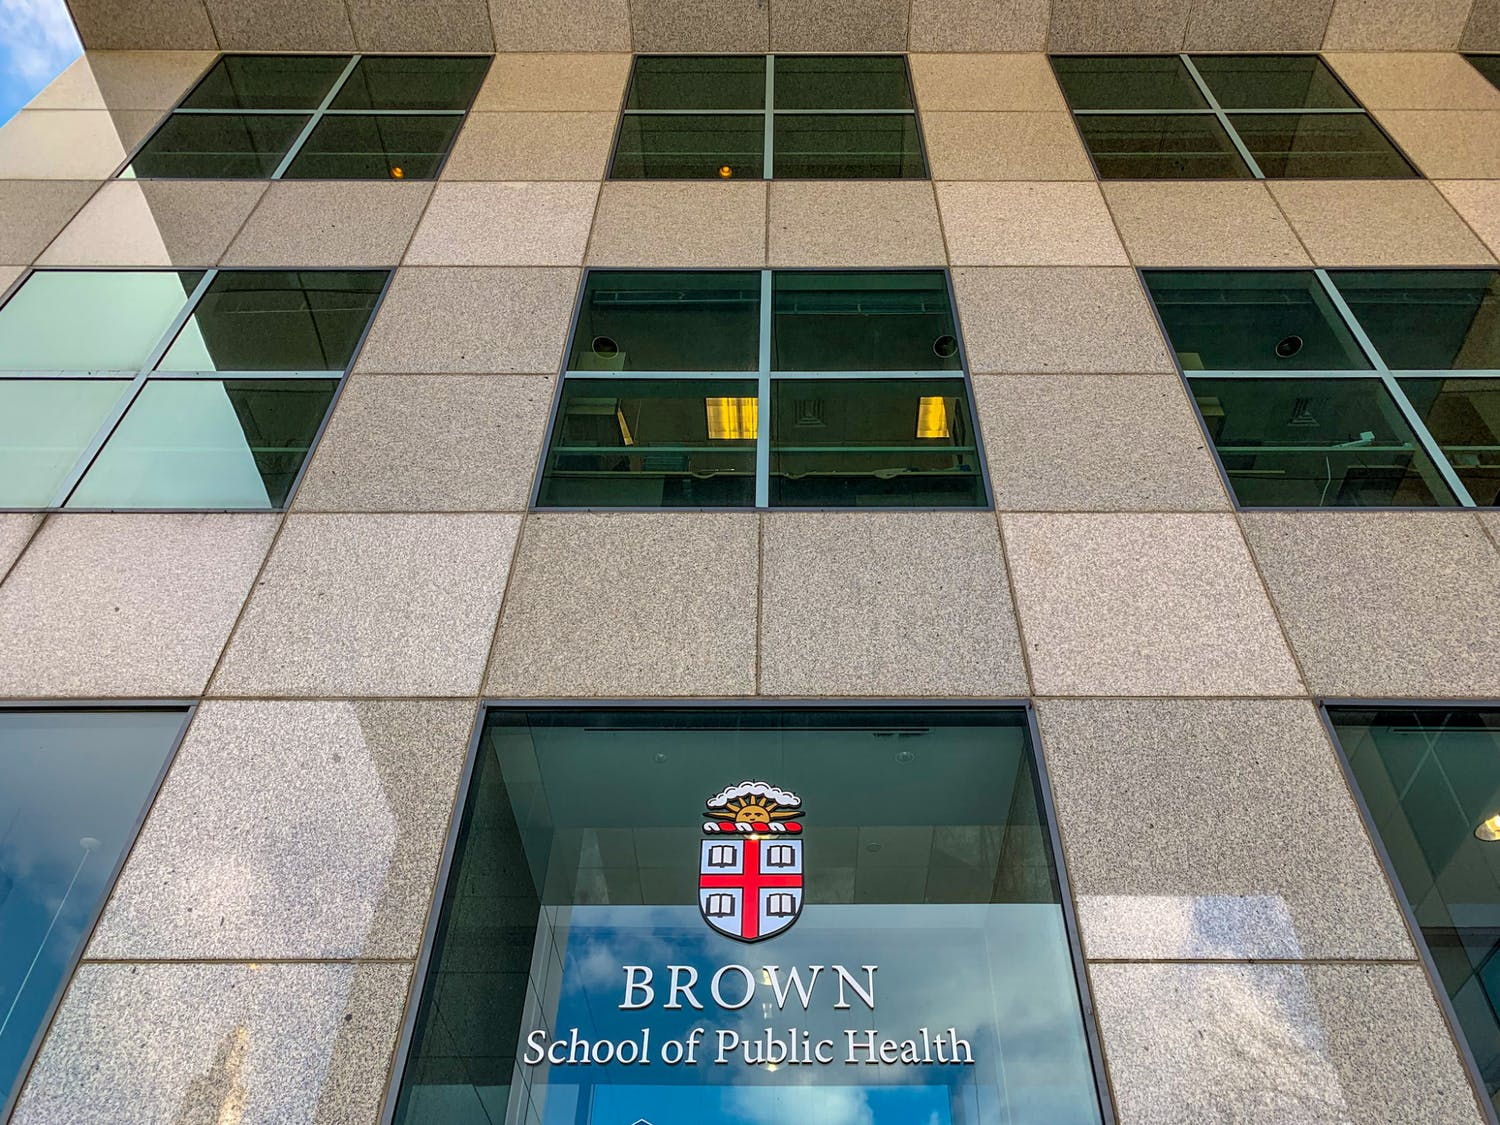 20190307-SPH-School_of_Public_Health_signage-01.png